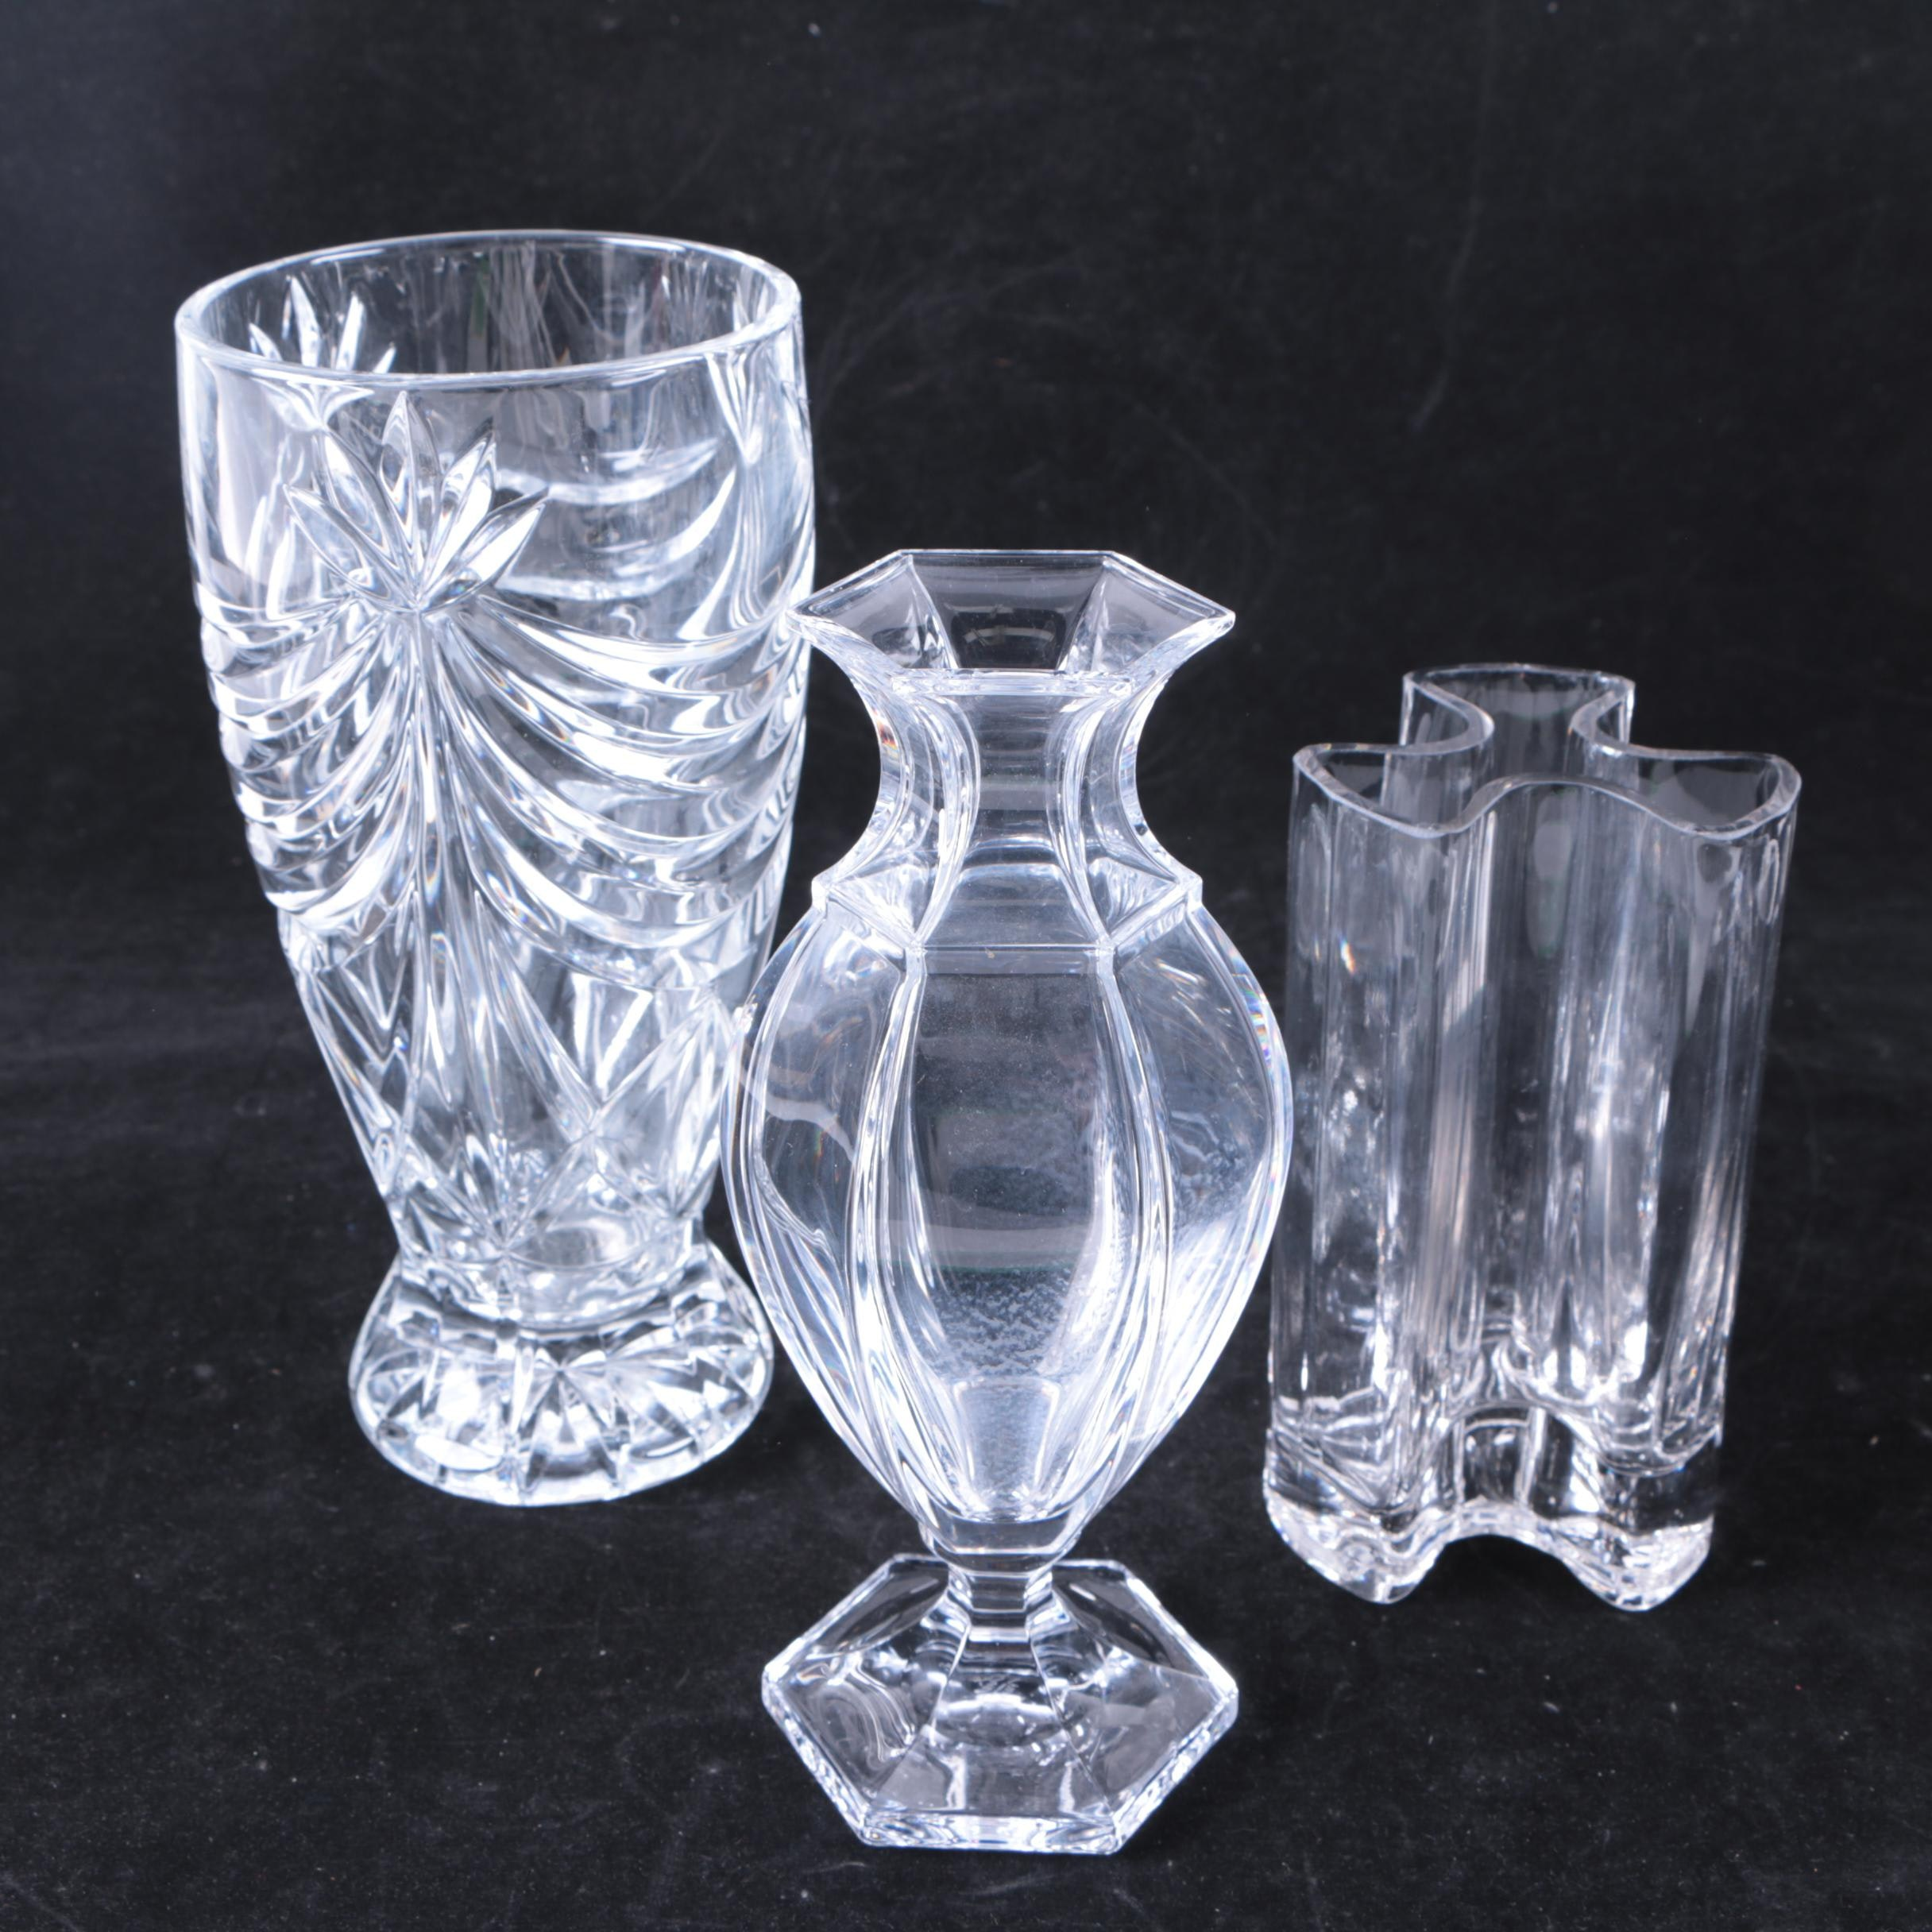 Vases Featuring Sèvres Crystal